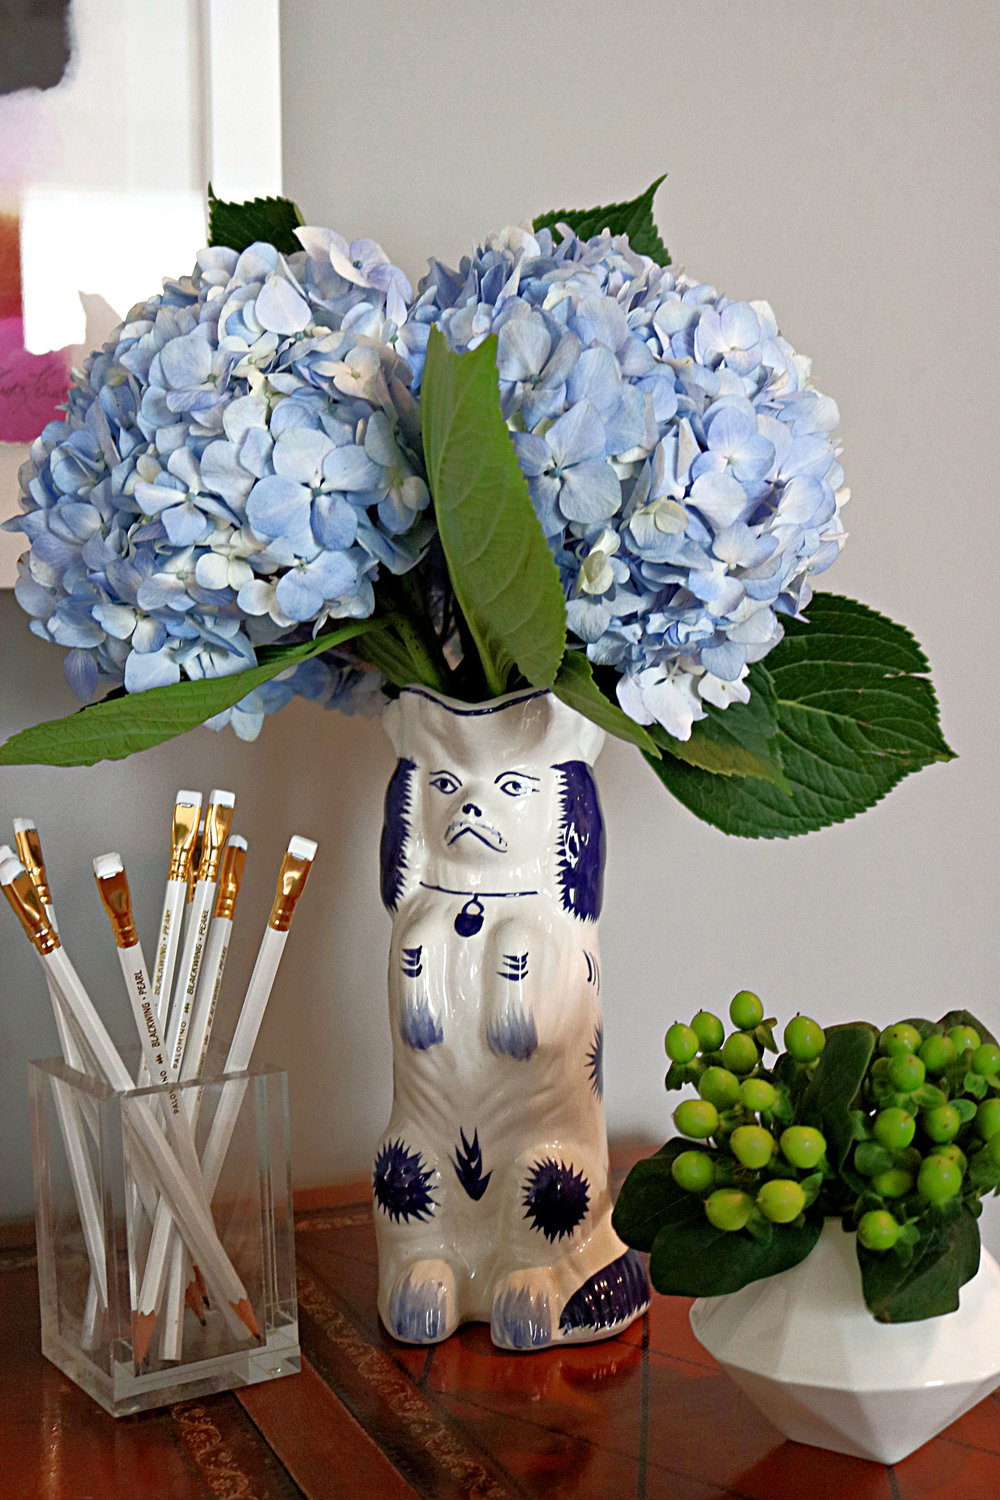 kelle dame interiors blue and white decor.jpg